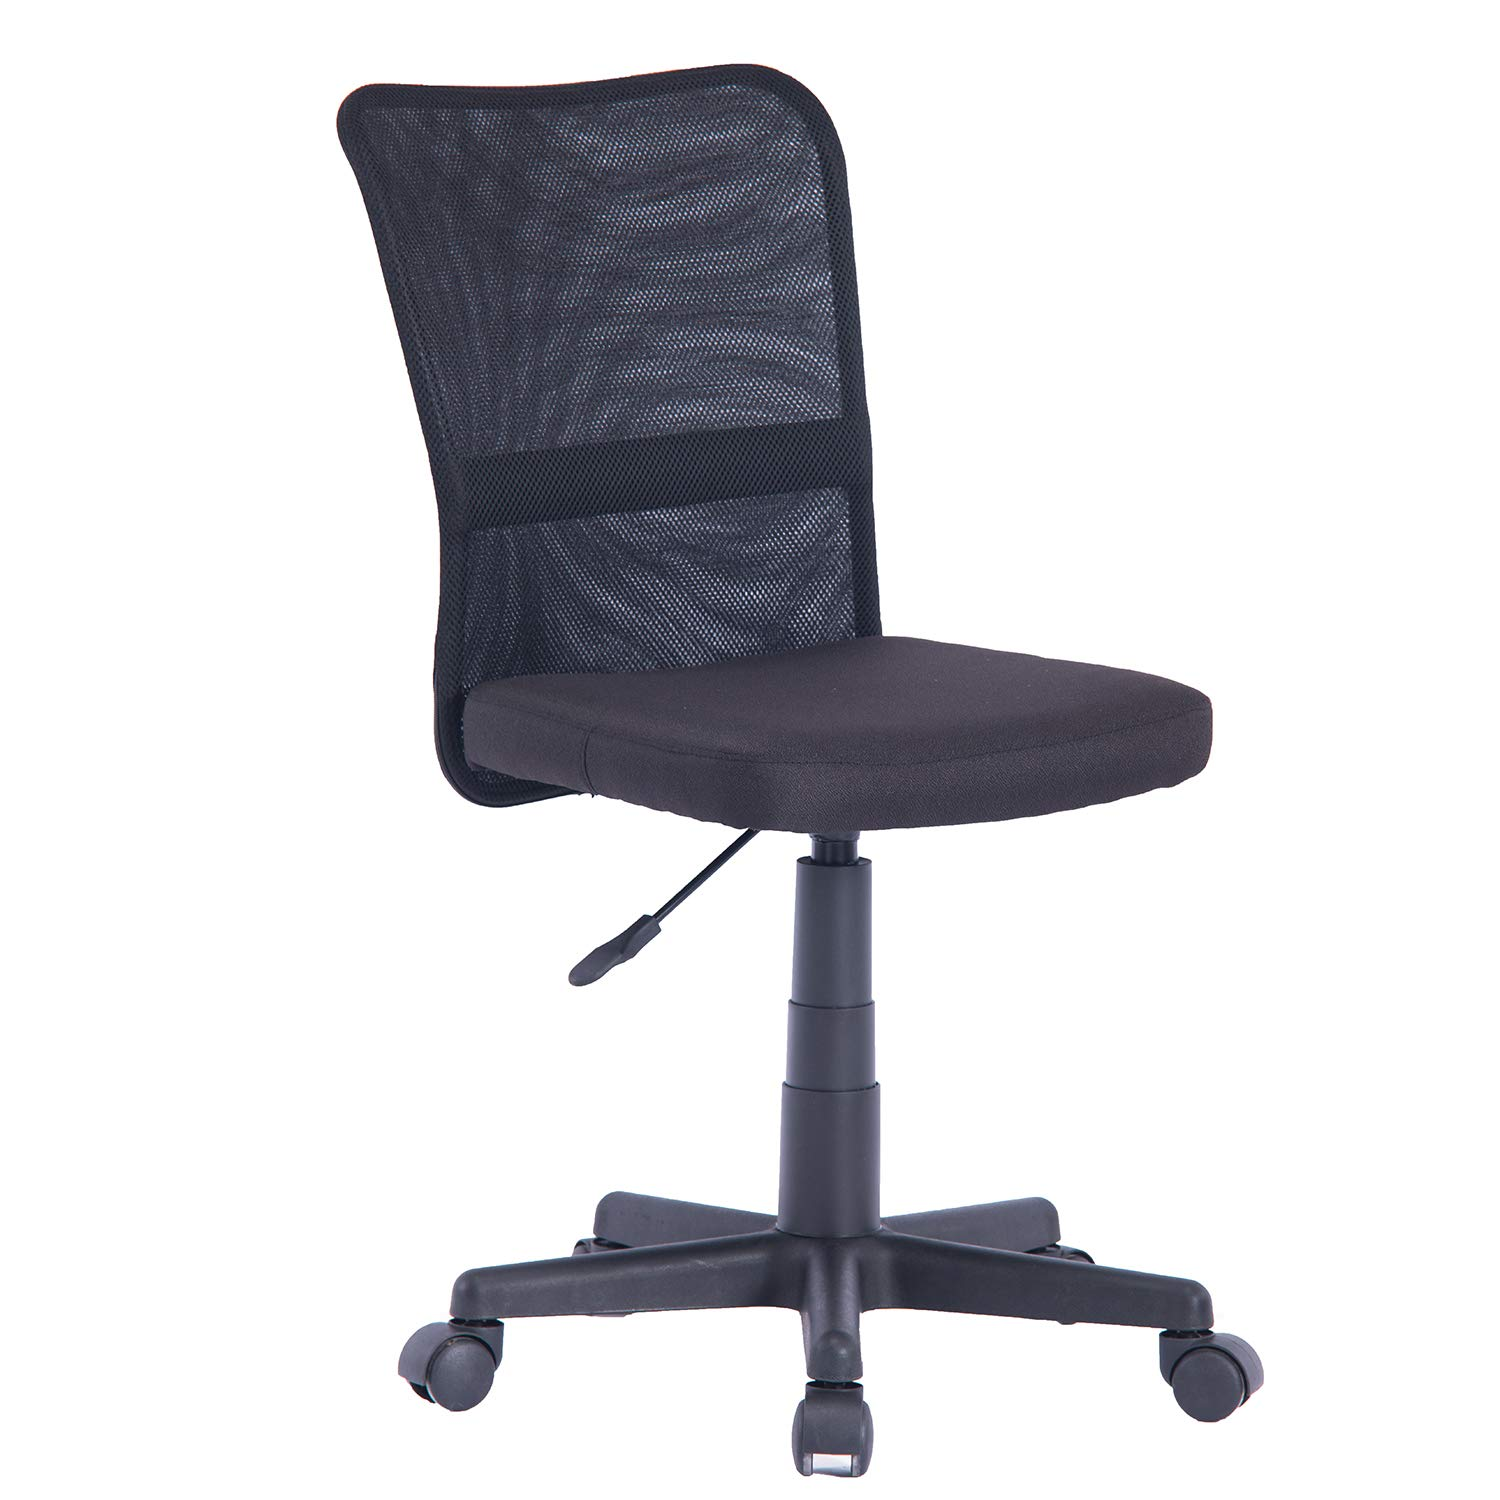 Home Ergonomic Mesh Medium Back Milan Fabric Seat Computer Desk Task Office Chair Without Arm ELEM001 (Black) by OFFICEFURNITURE ONLINE